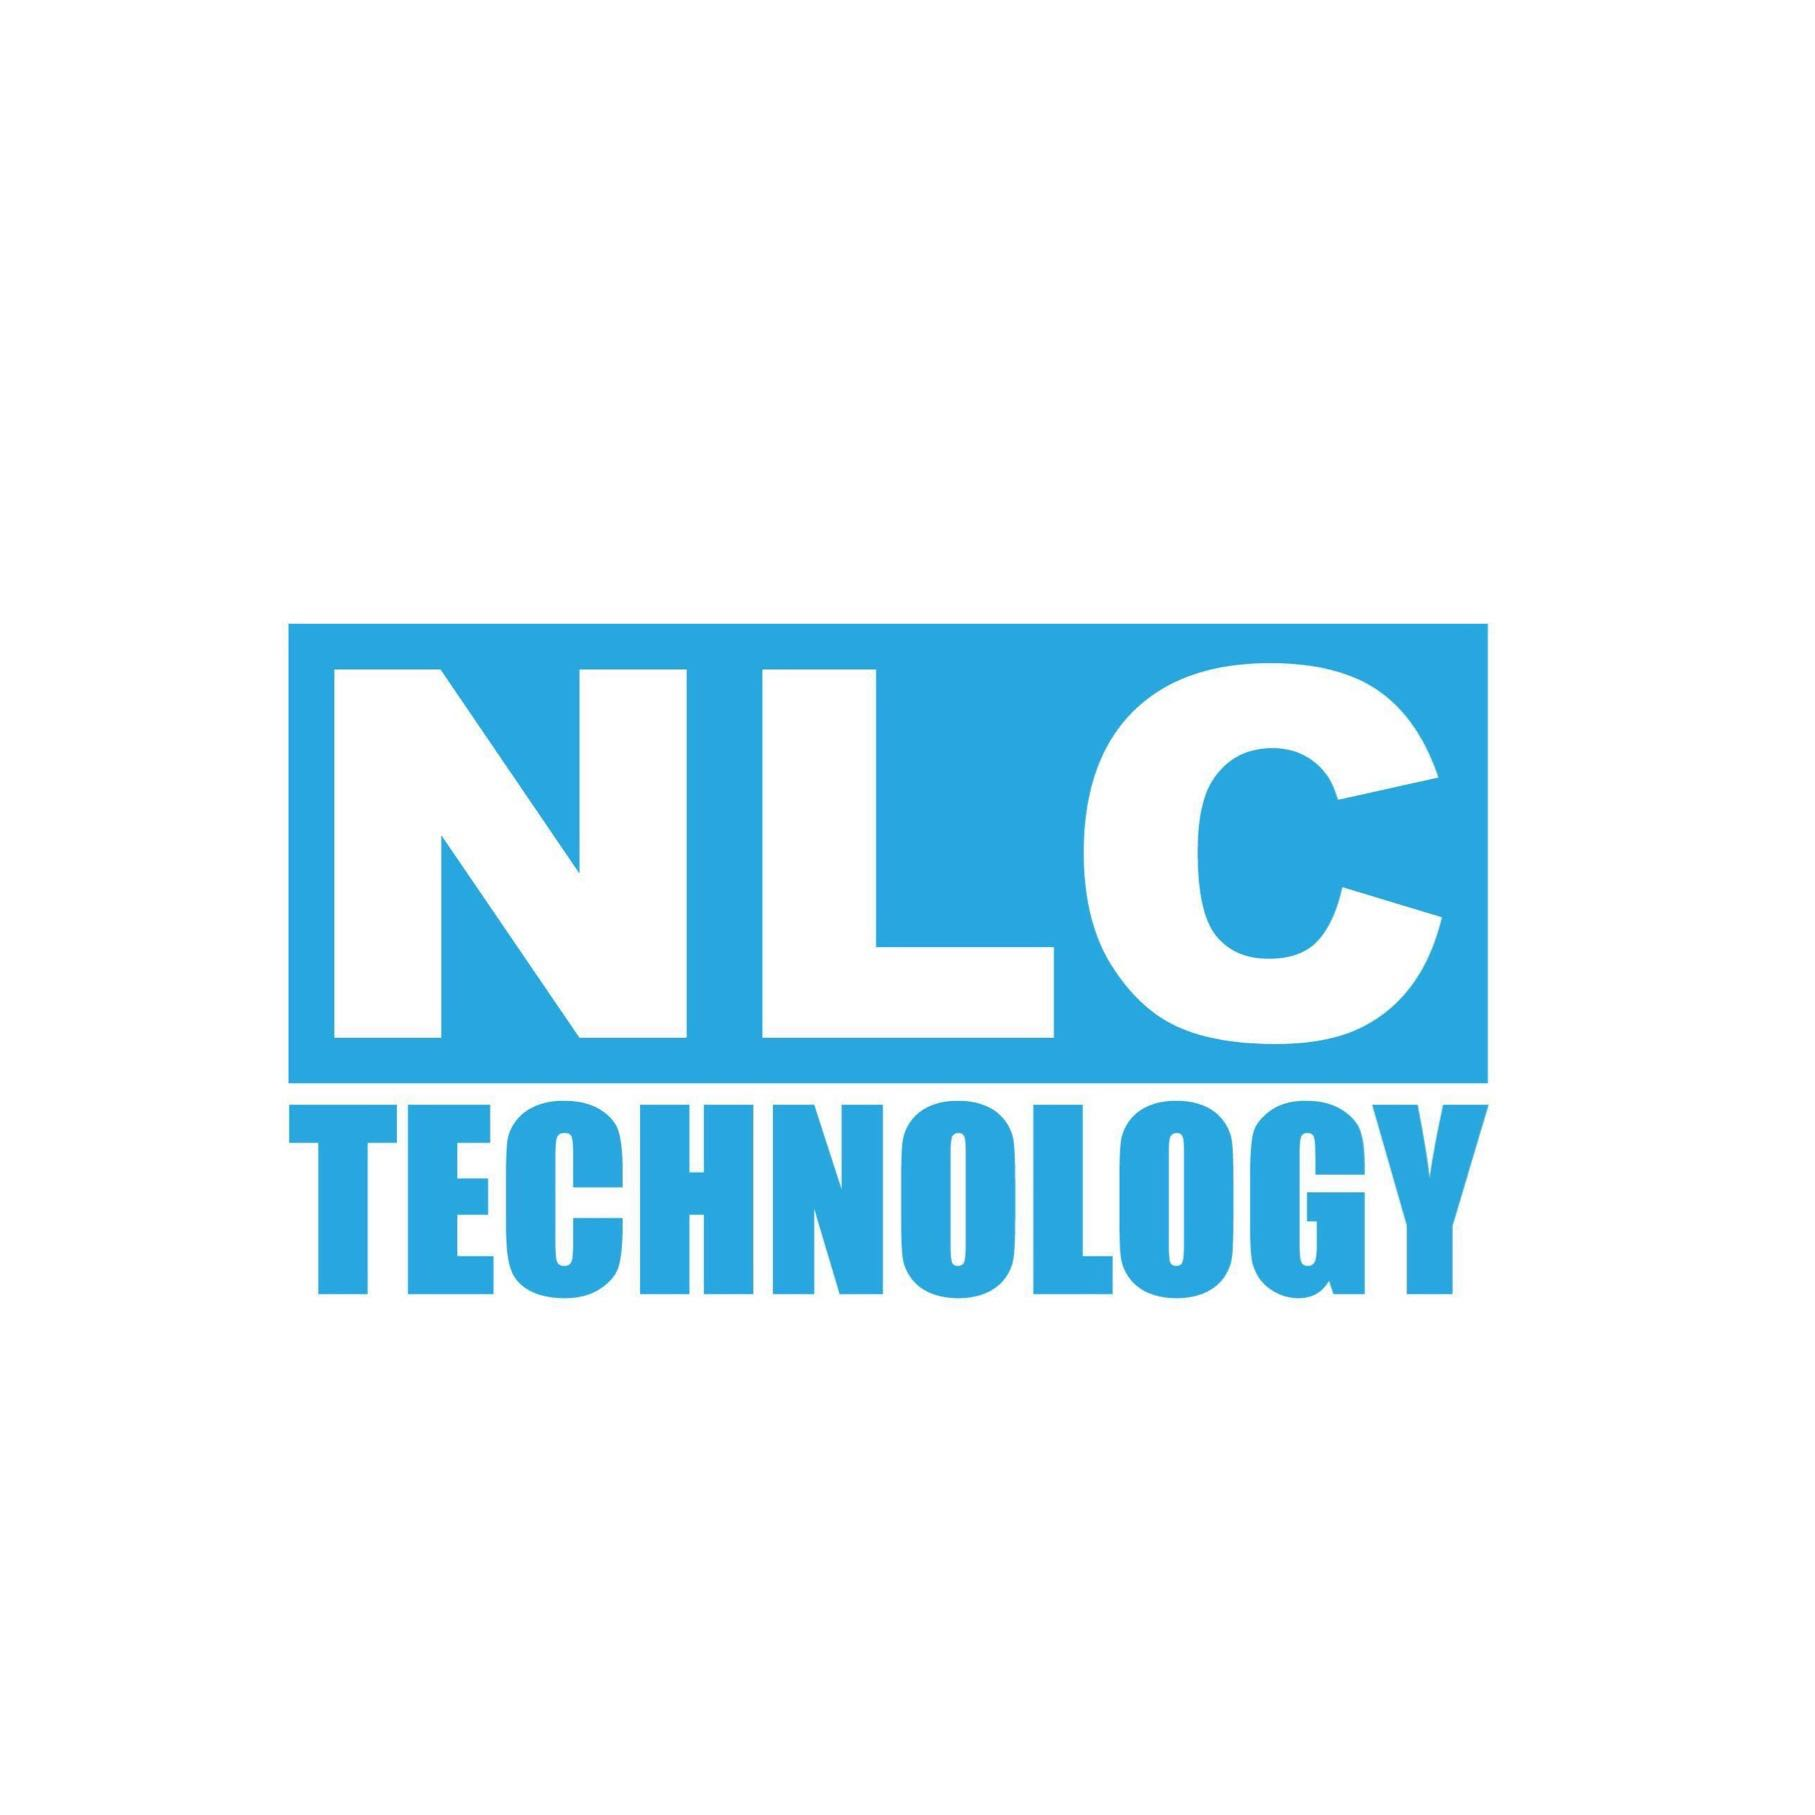 nlc_technology